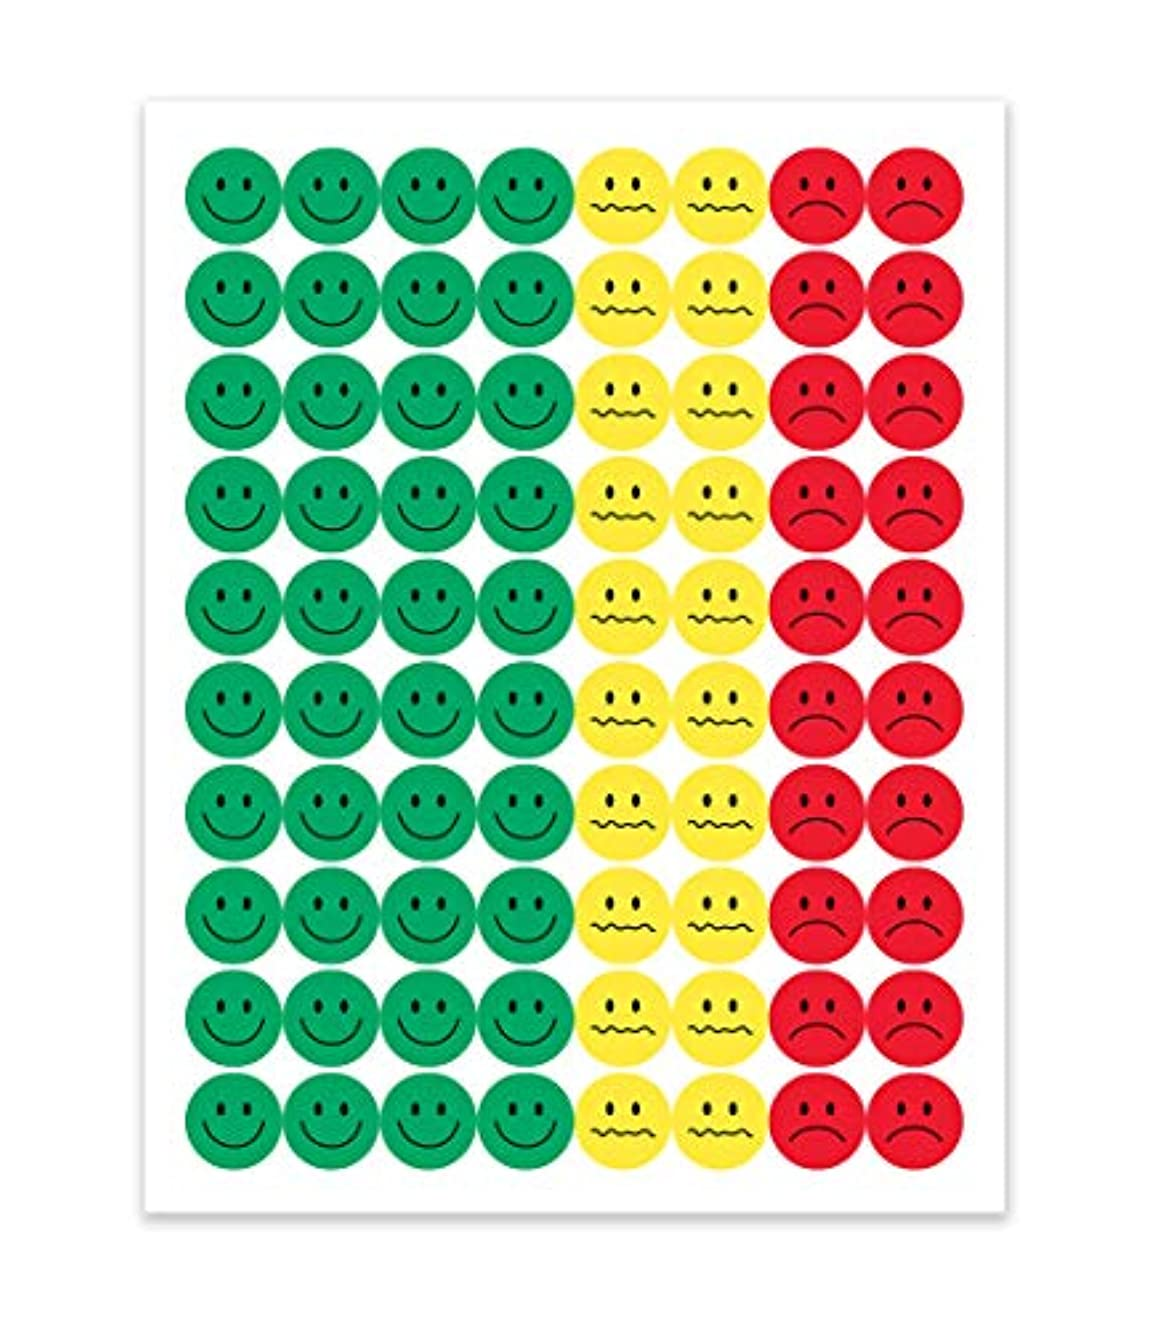 Hygloss Products 1200 Behavior Stickers, 1/2-Inch, Green/Yellow and Red